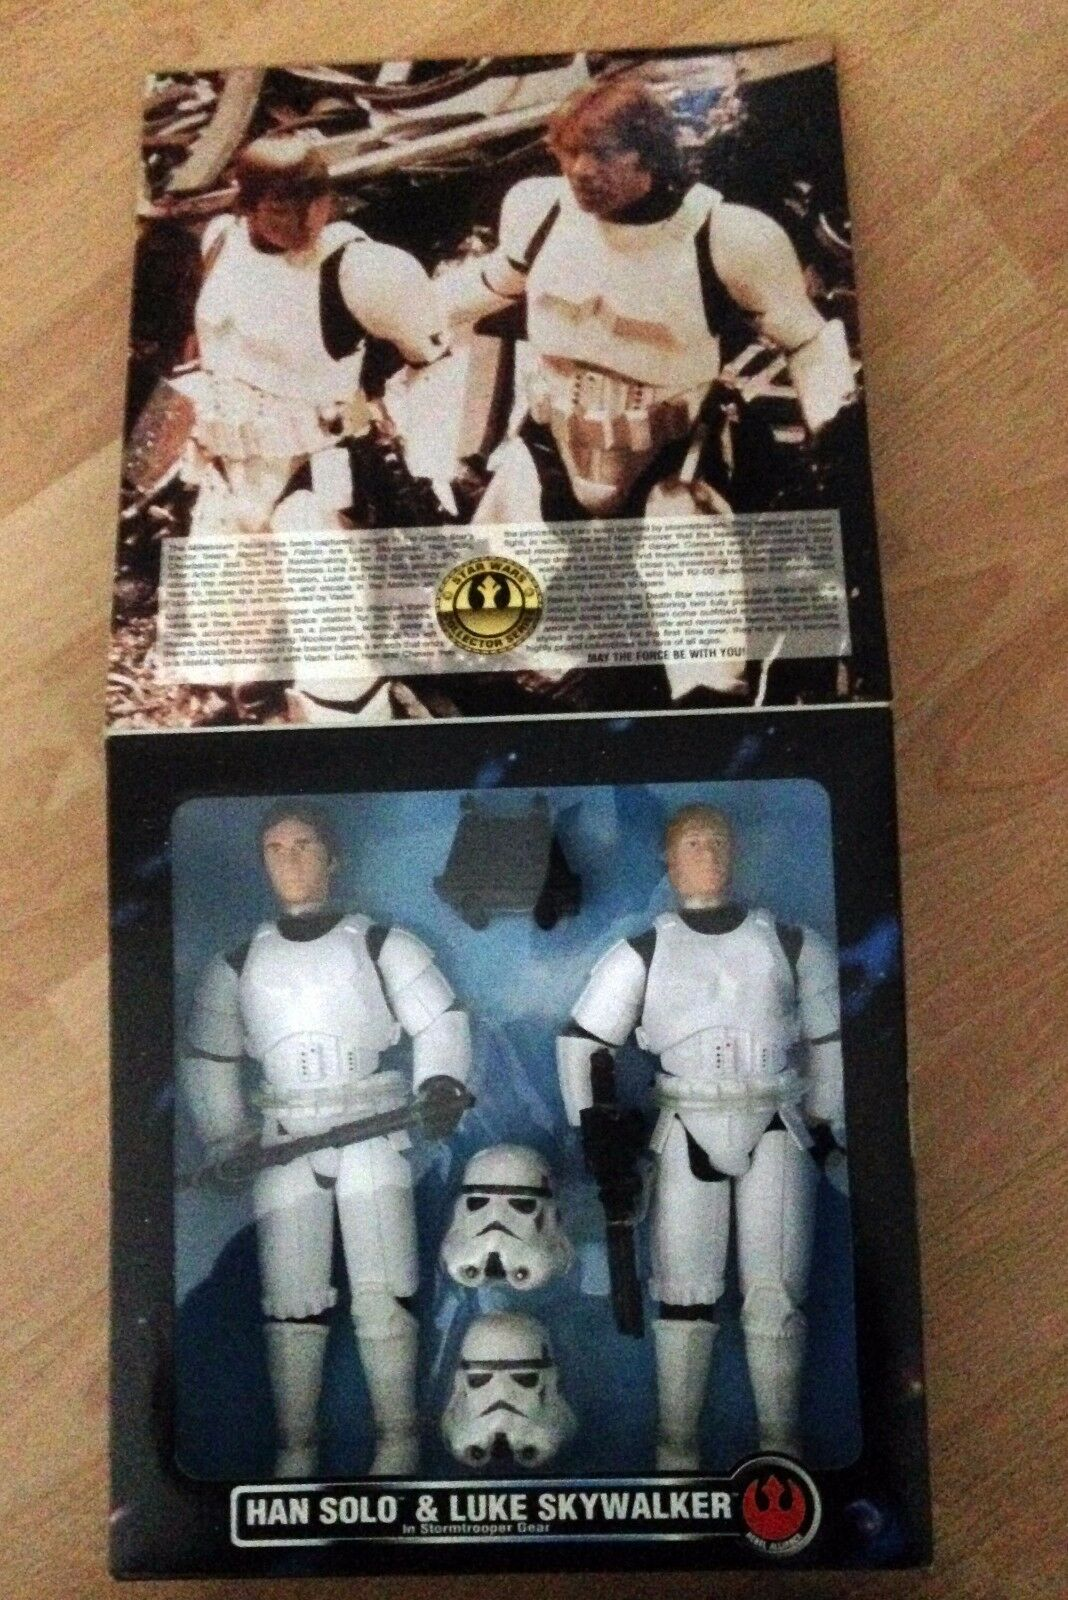 Star Wars Han Solo & Luke Skywalker Stormtrooper Disguise Disguise Disguise 12'' KB Toys Exclusive 4218d5